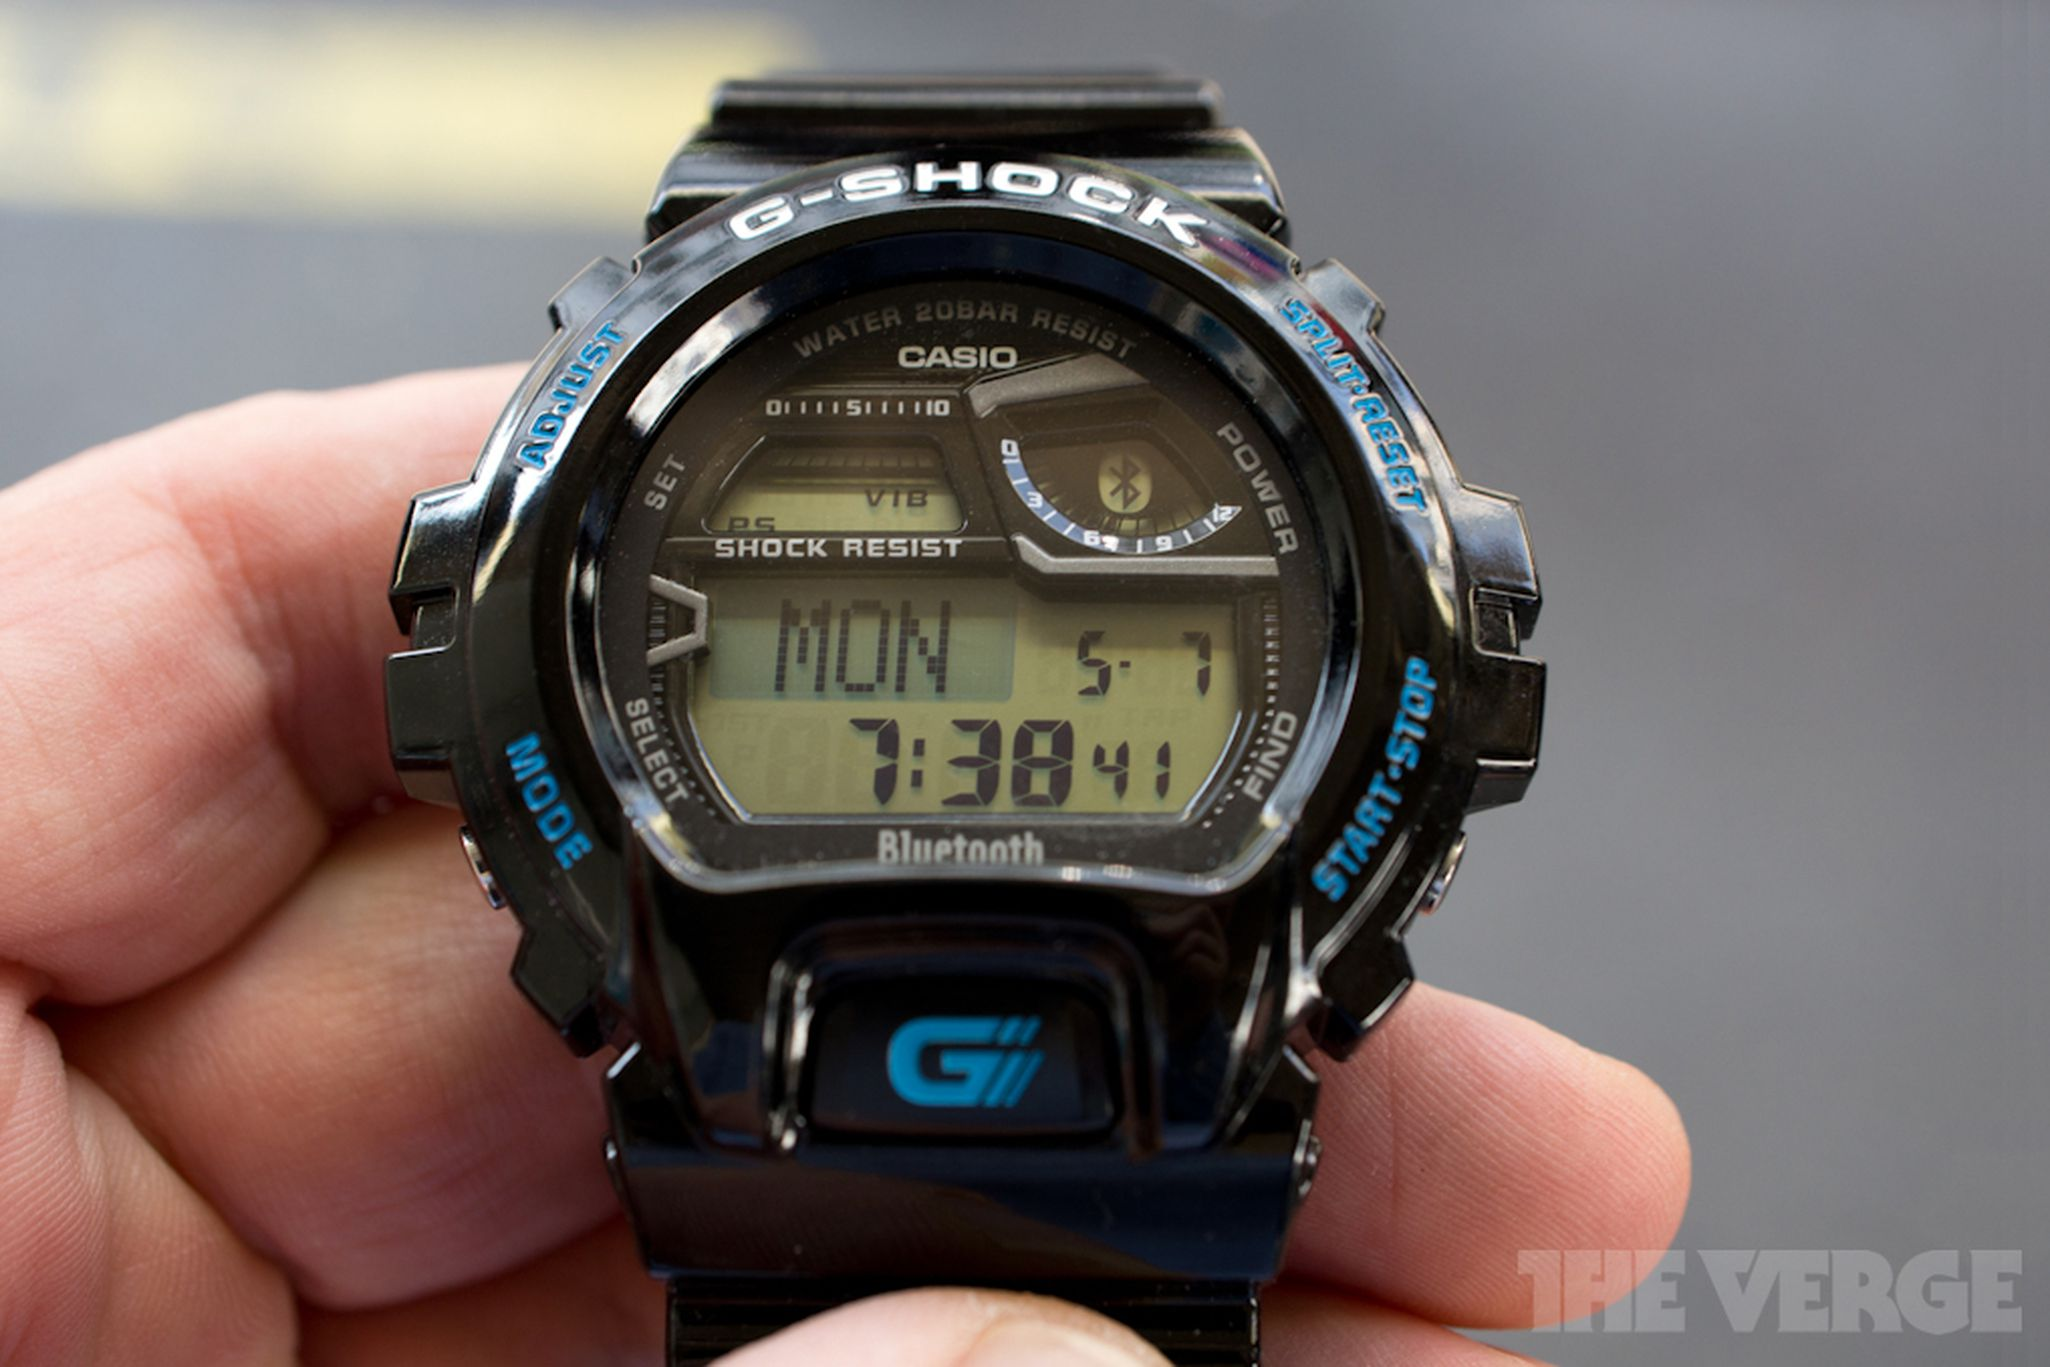 Casio G-Shock GB-6900 Bluetooth watch review  8d45fde8364